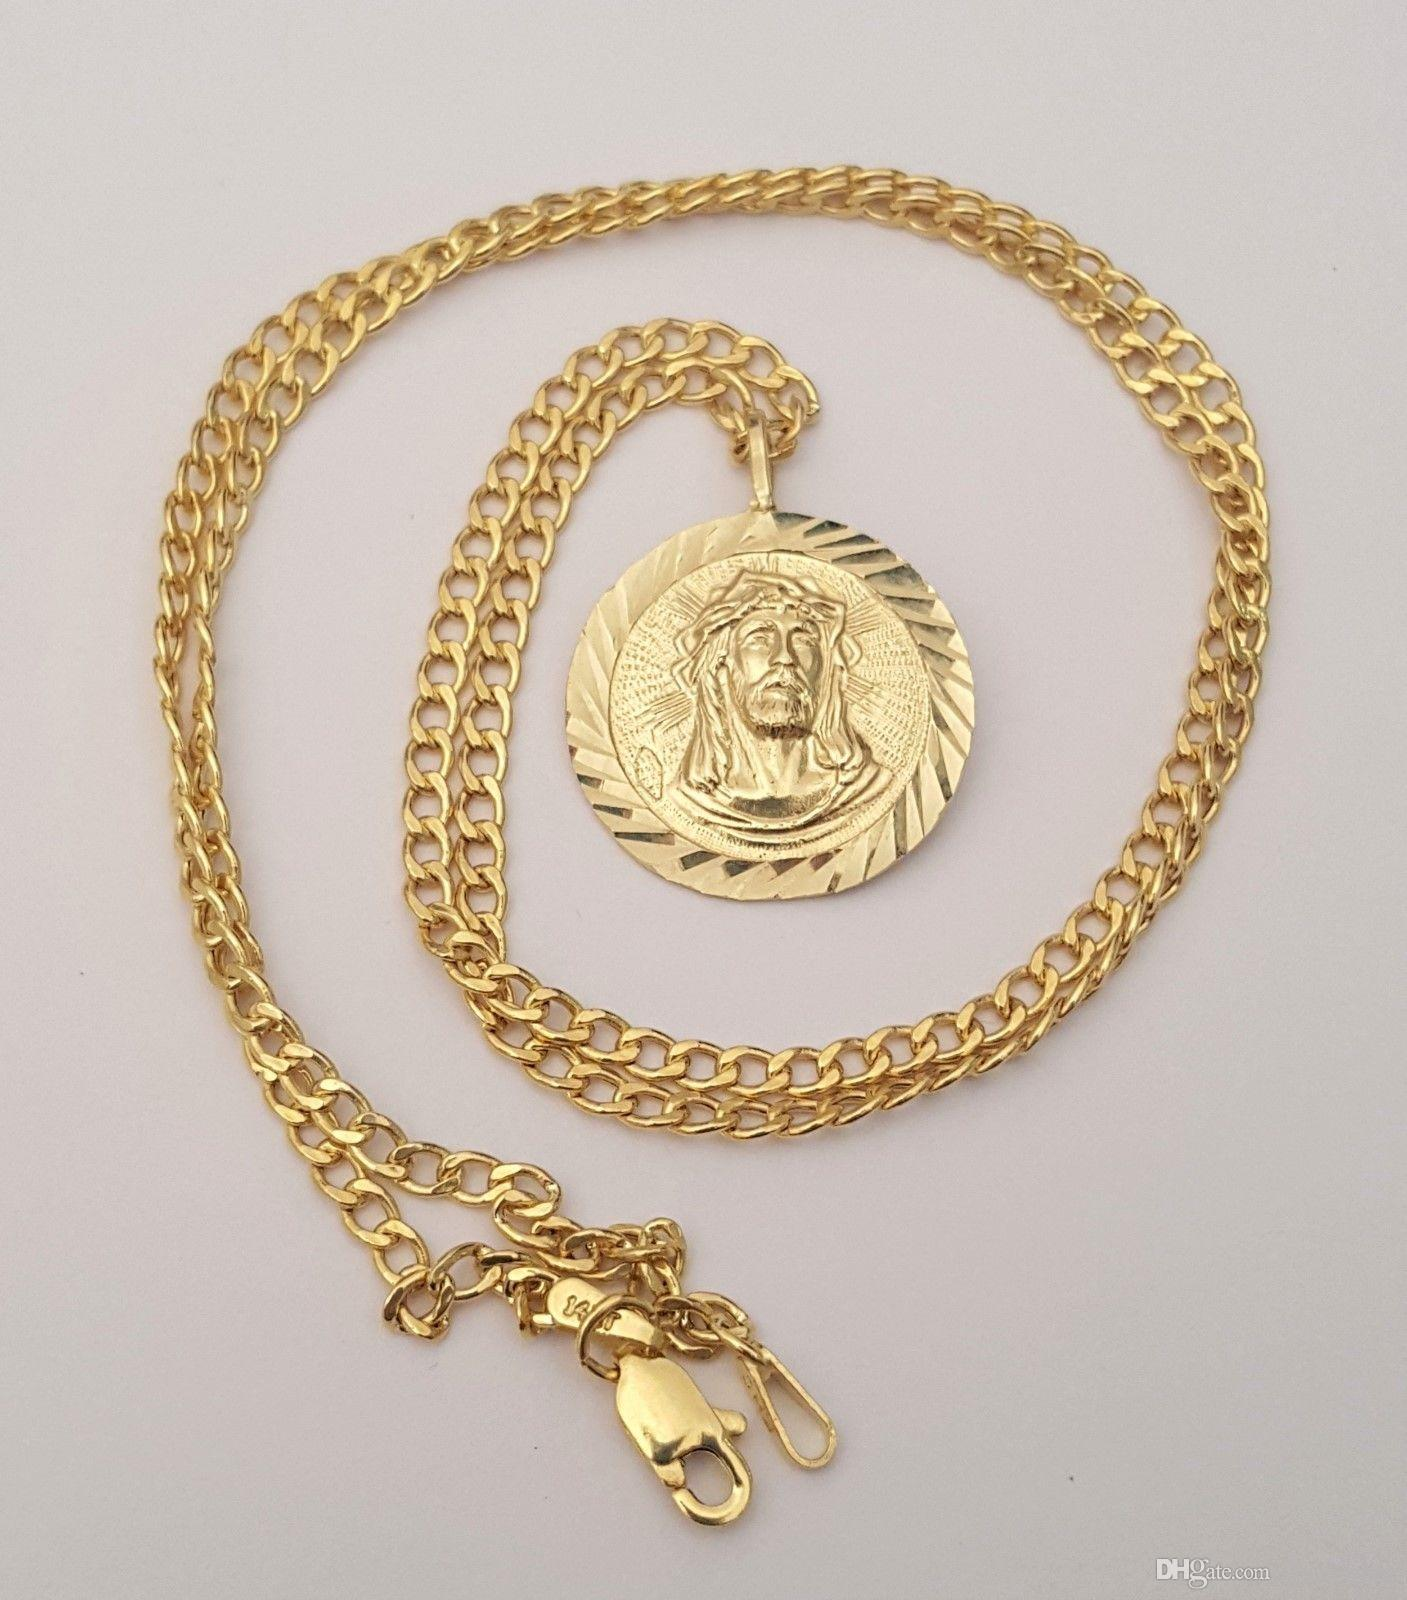 medusa pendant gemstone medallion link gold rc cuban